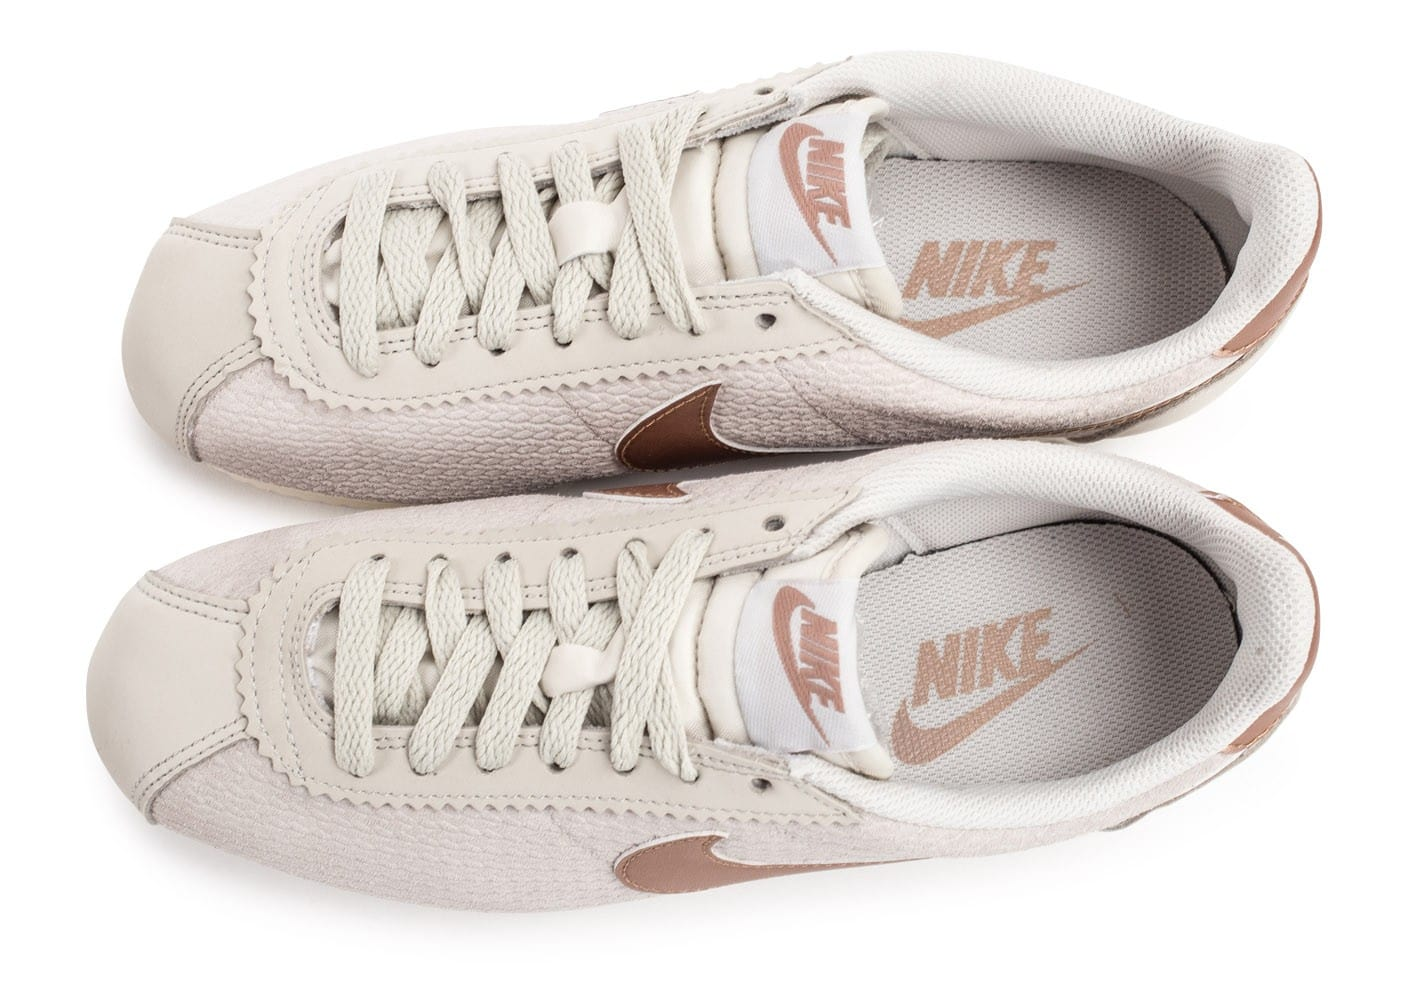 the latest 61d32 c9dc3 Chaussure Nike Cortez Cuir